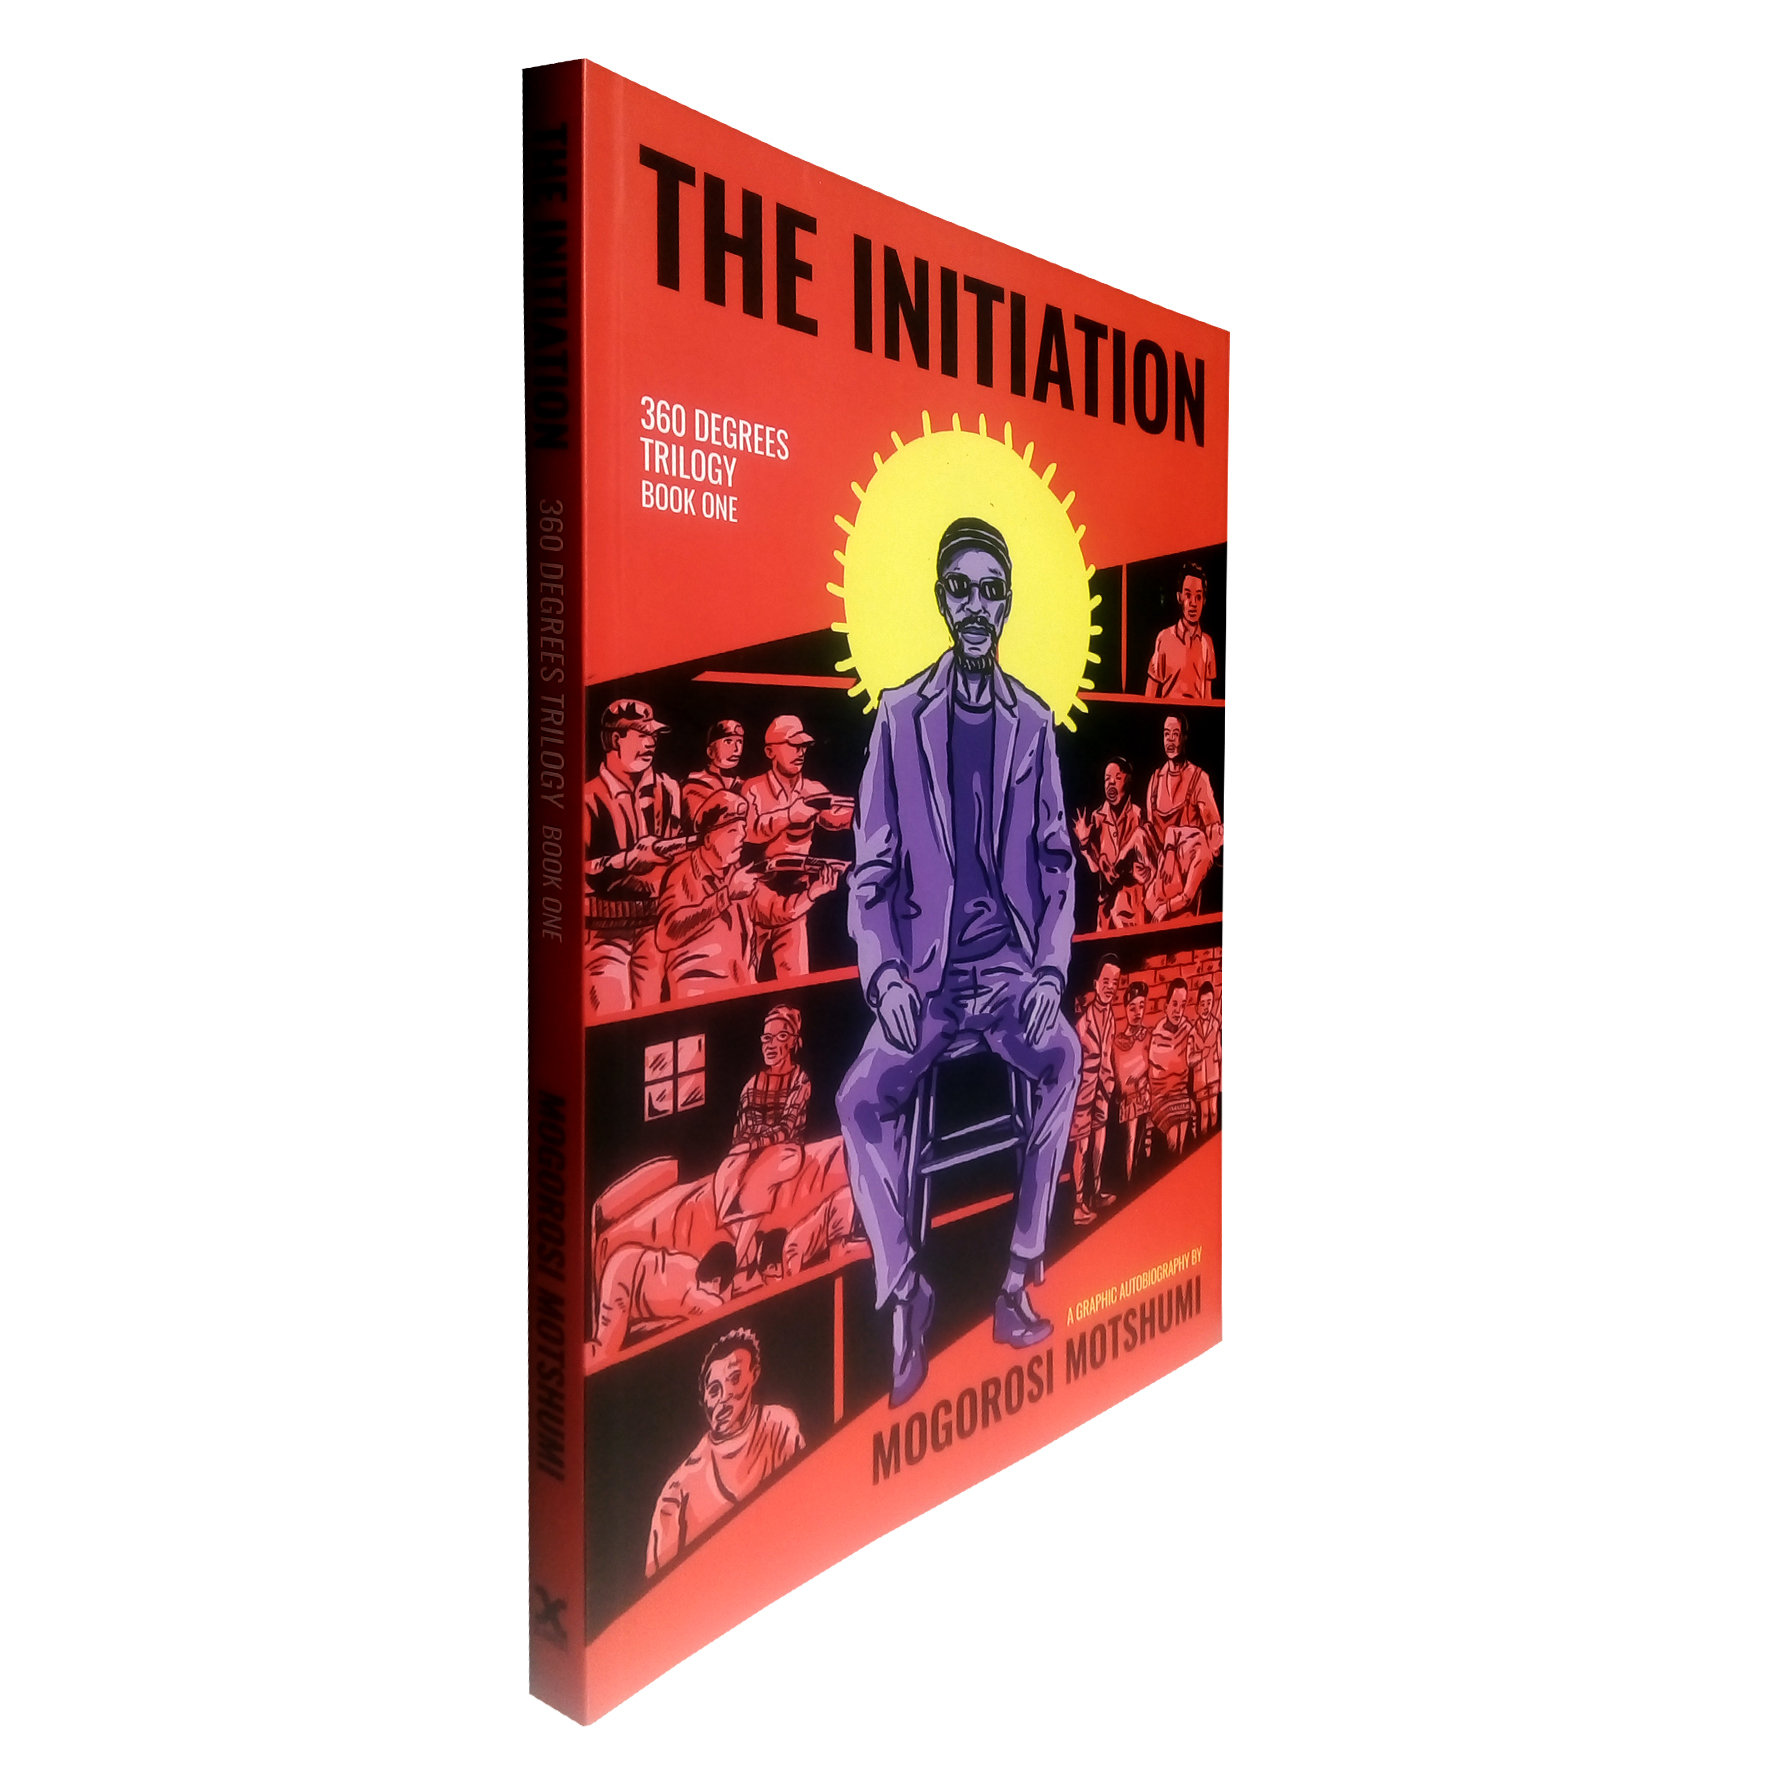 The Initiation by Mogorosi Motshumi (XLibris, 2016) CIR25